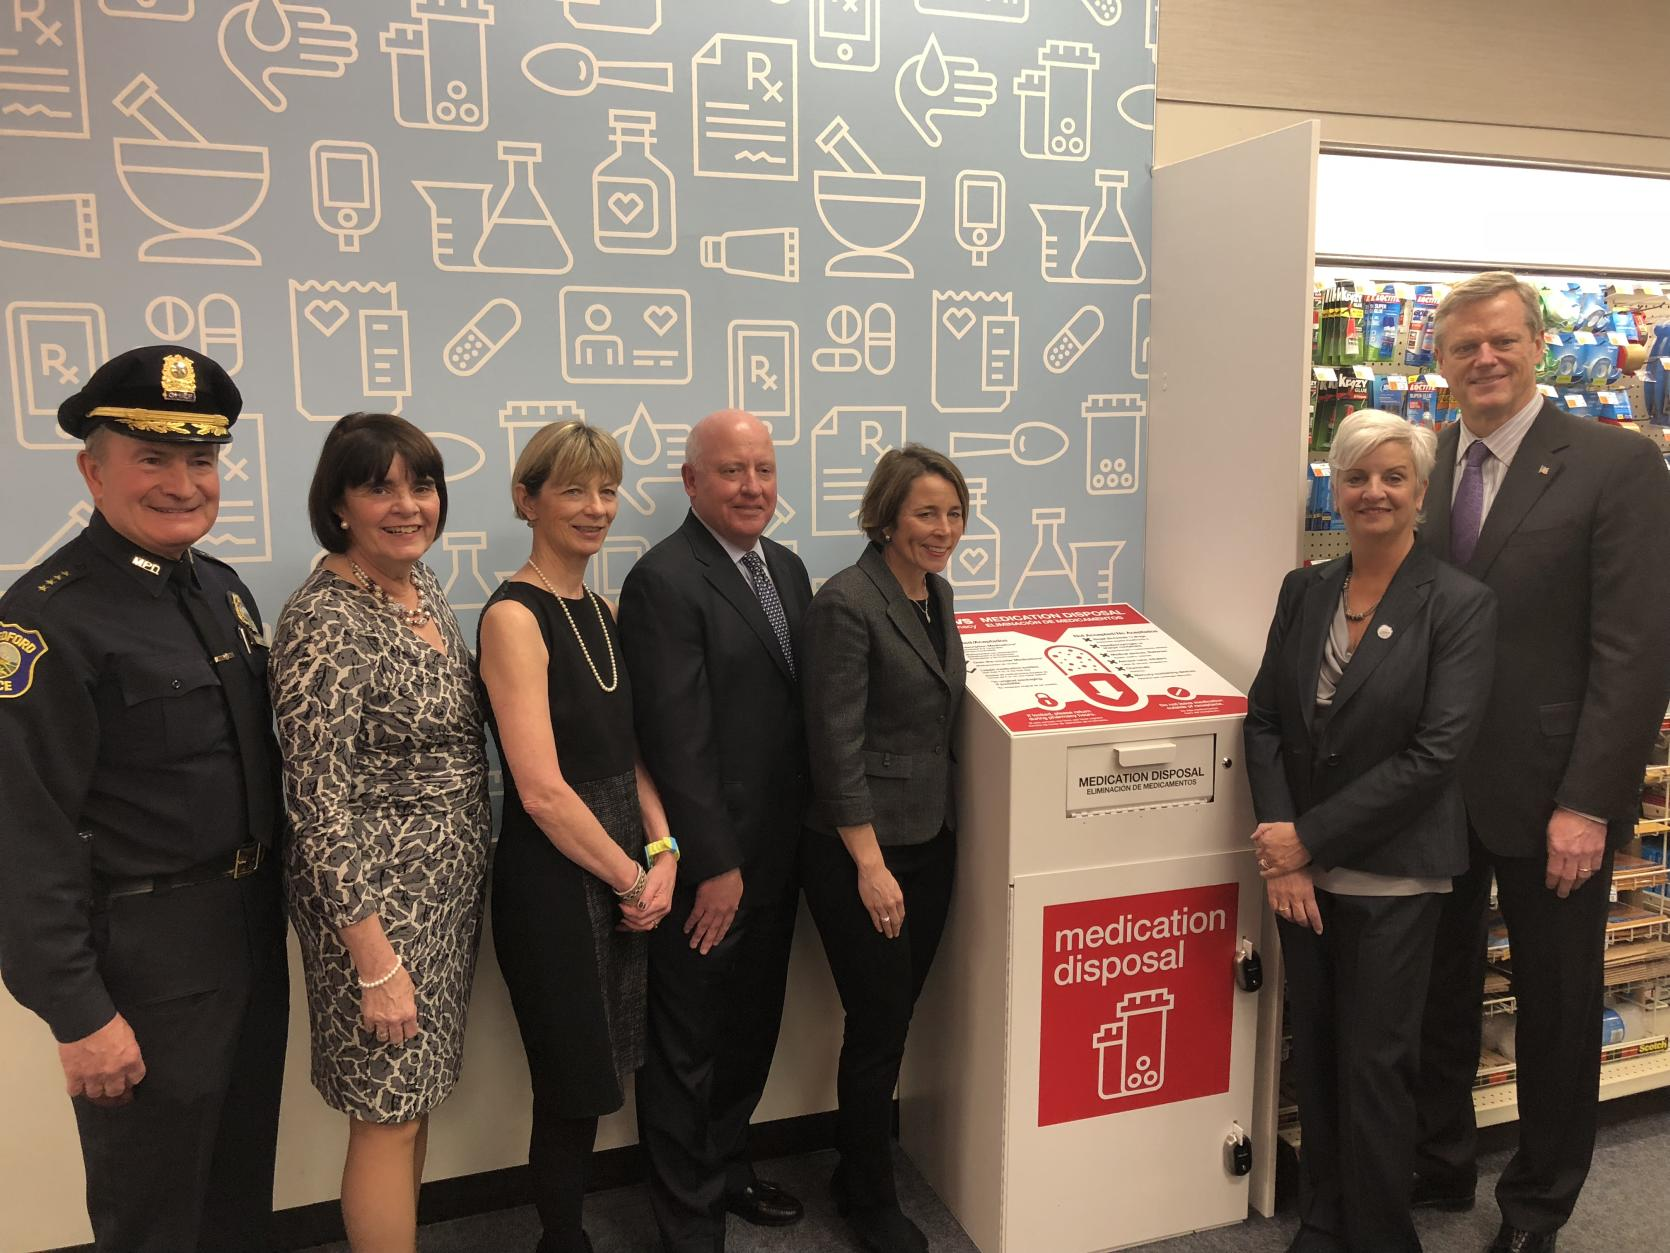 Governor Baker and others in Medford announce safe medication disposal units at Massachusetts CVS pharmacies.